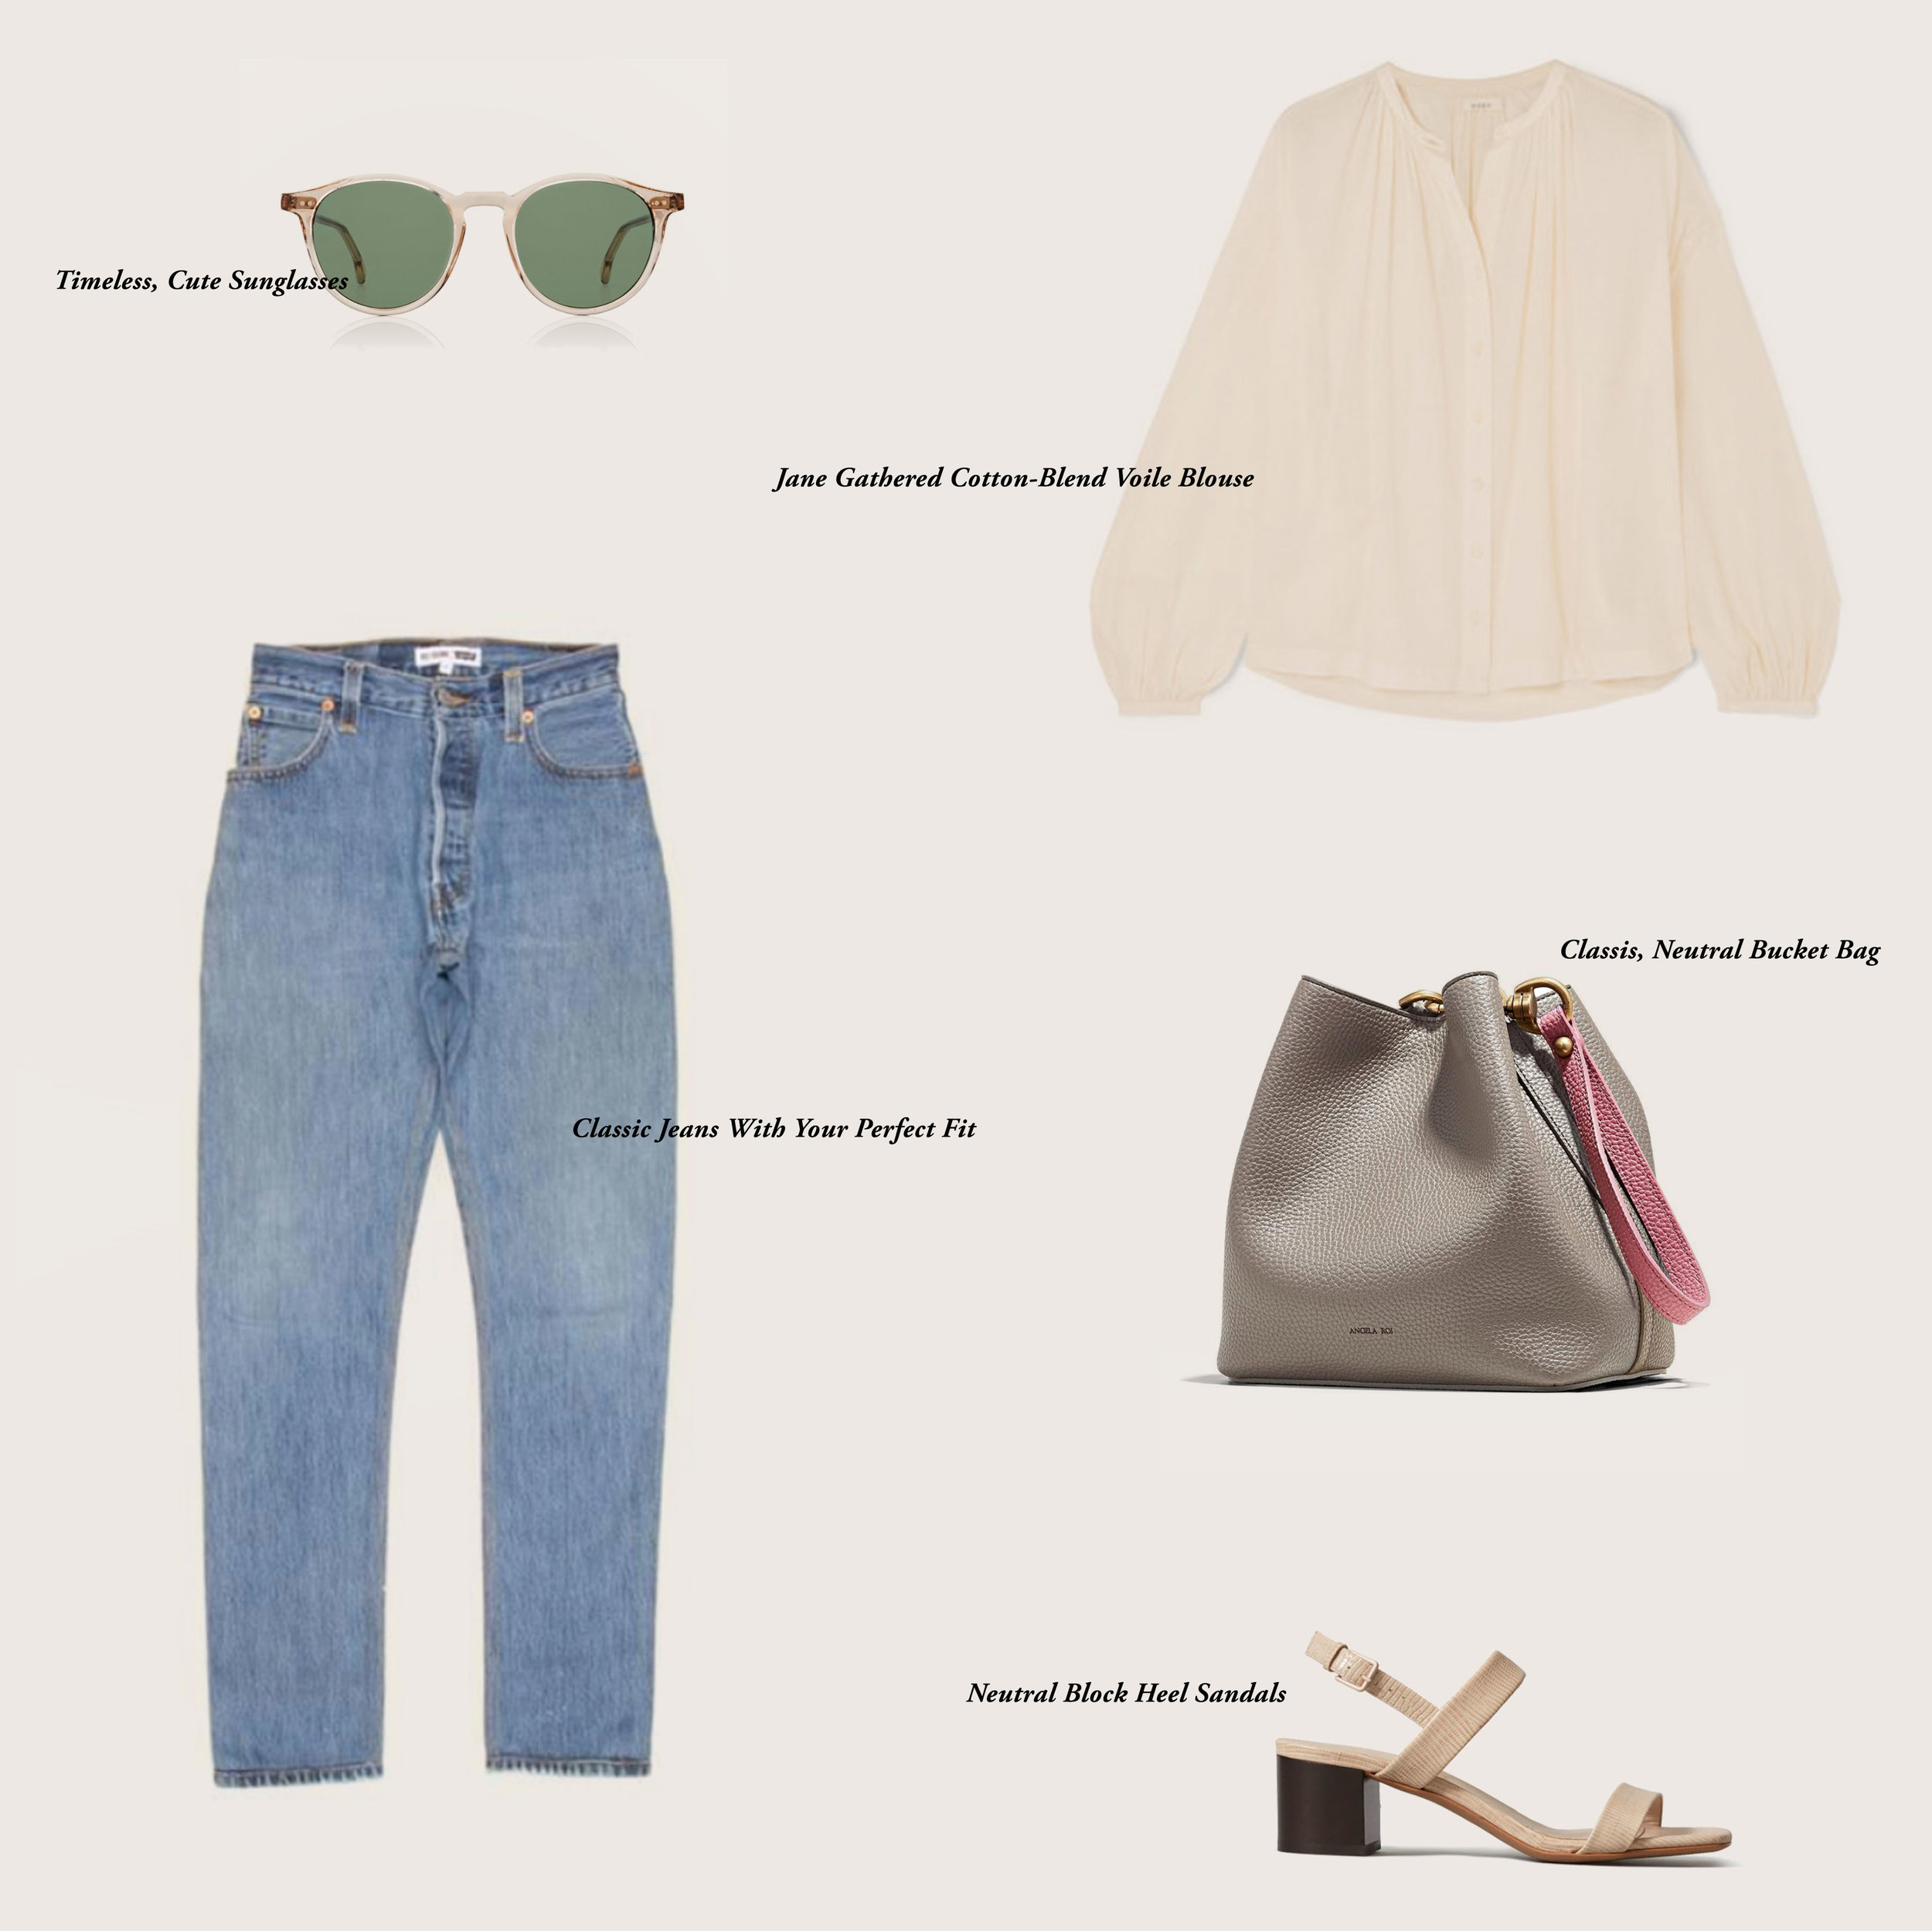 doen-jane-blouse-angela-roi-bag-everlane-block-heel-sandals-pantos-paris-sunglasses.jpg